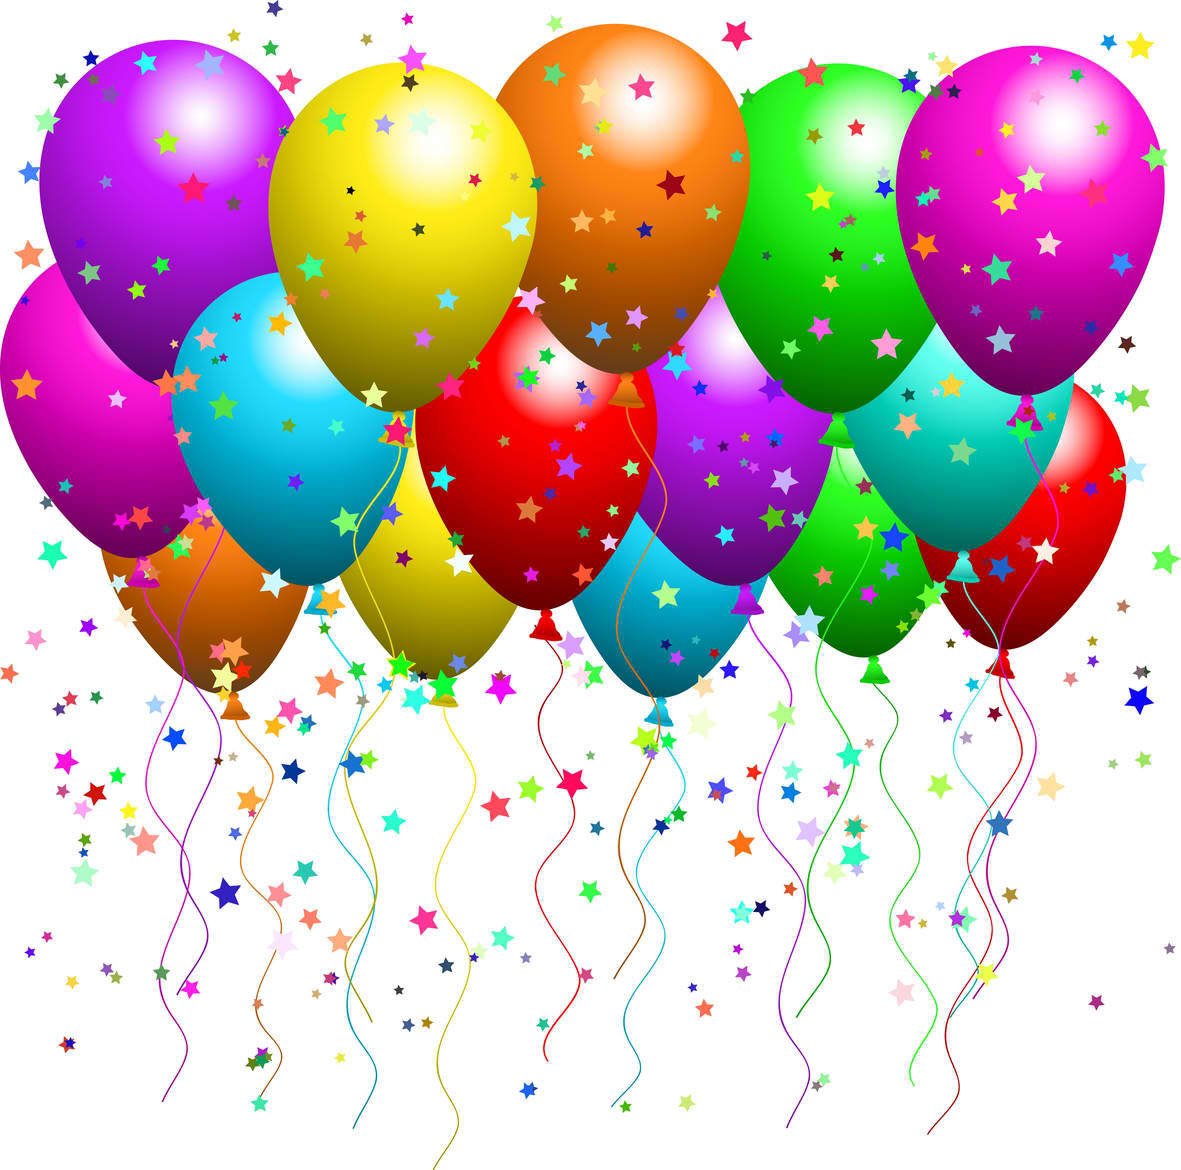 clipart library download Happy birthday balloons clipart. Free cliparts download clip